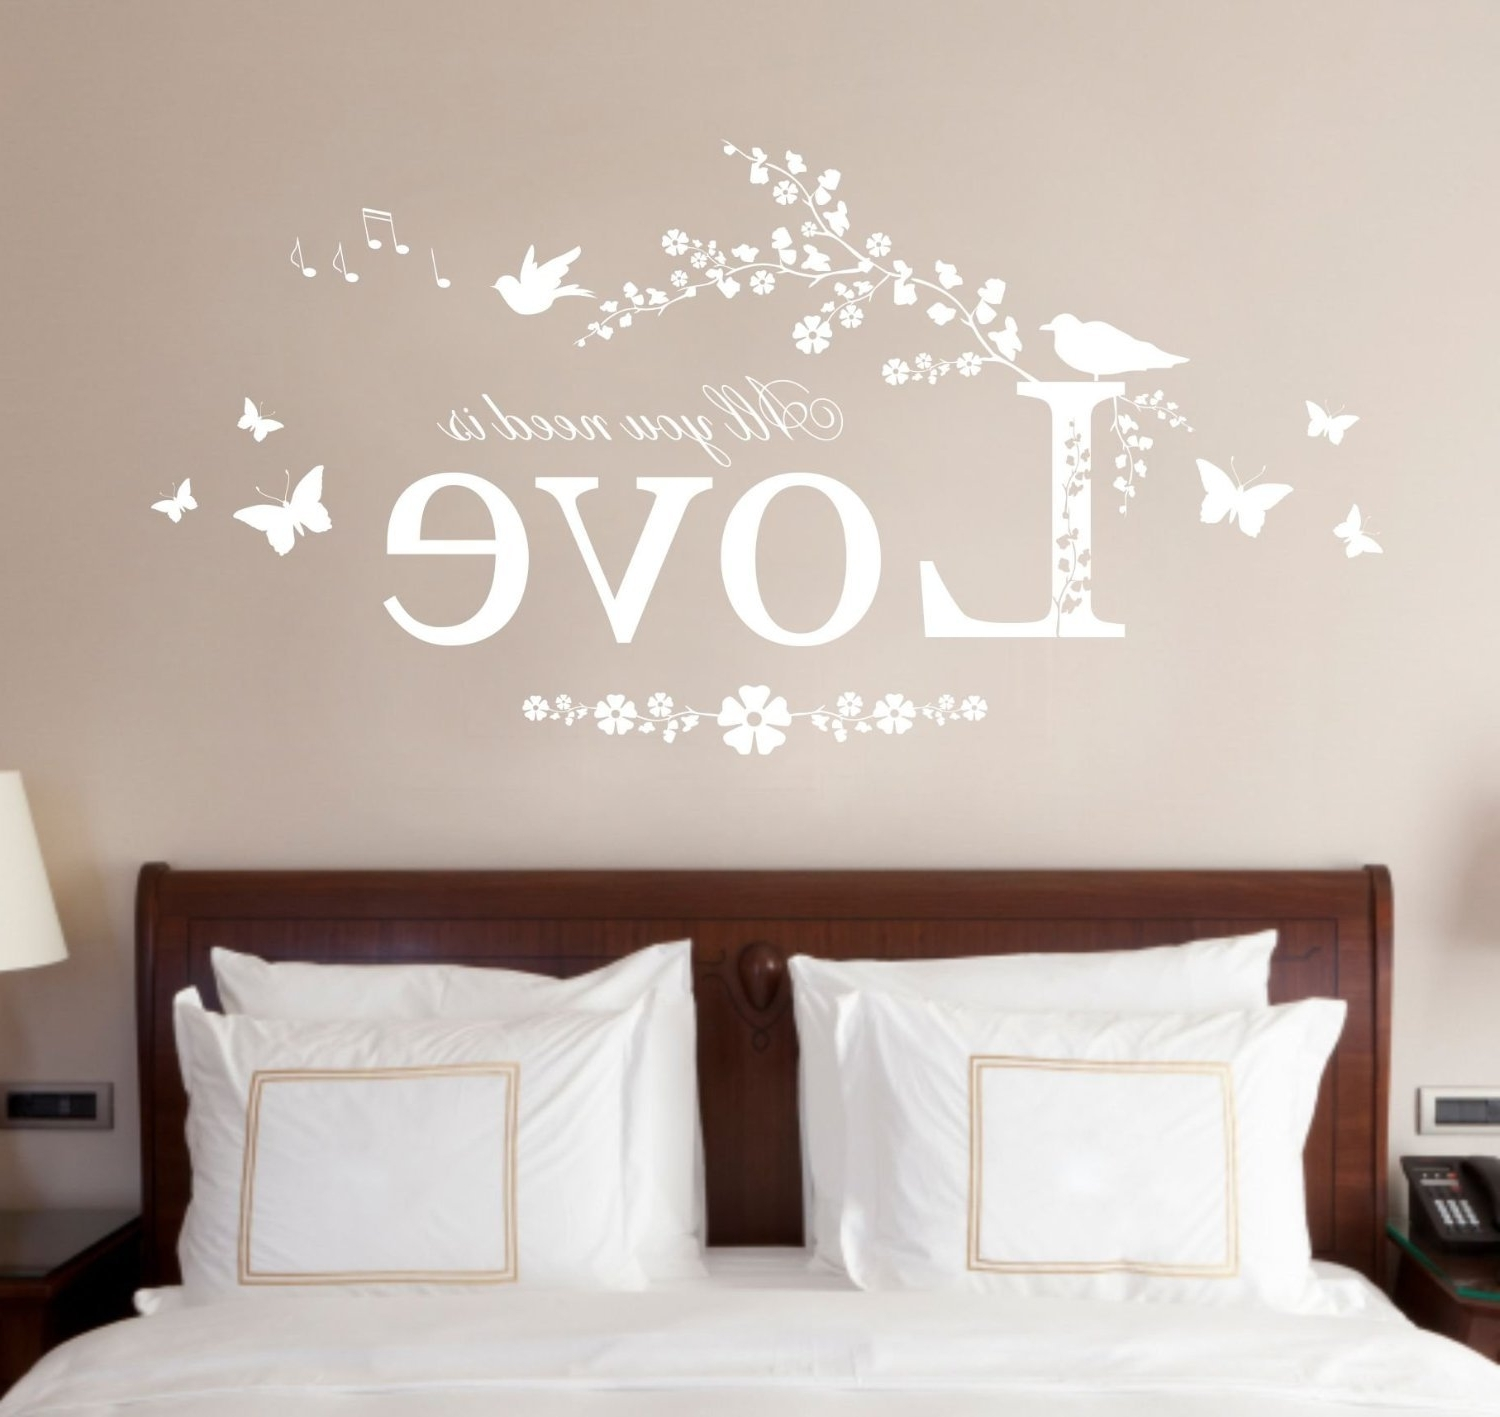 Fashionable Wall Art For Bedroom With Regard To Bedroom Art: Amazon.co (View 10 of 15)